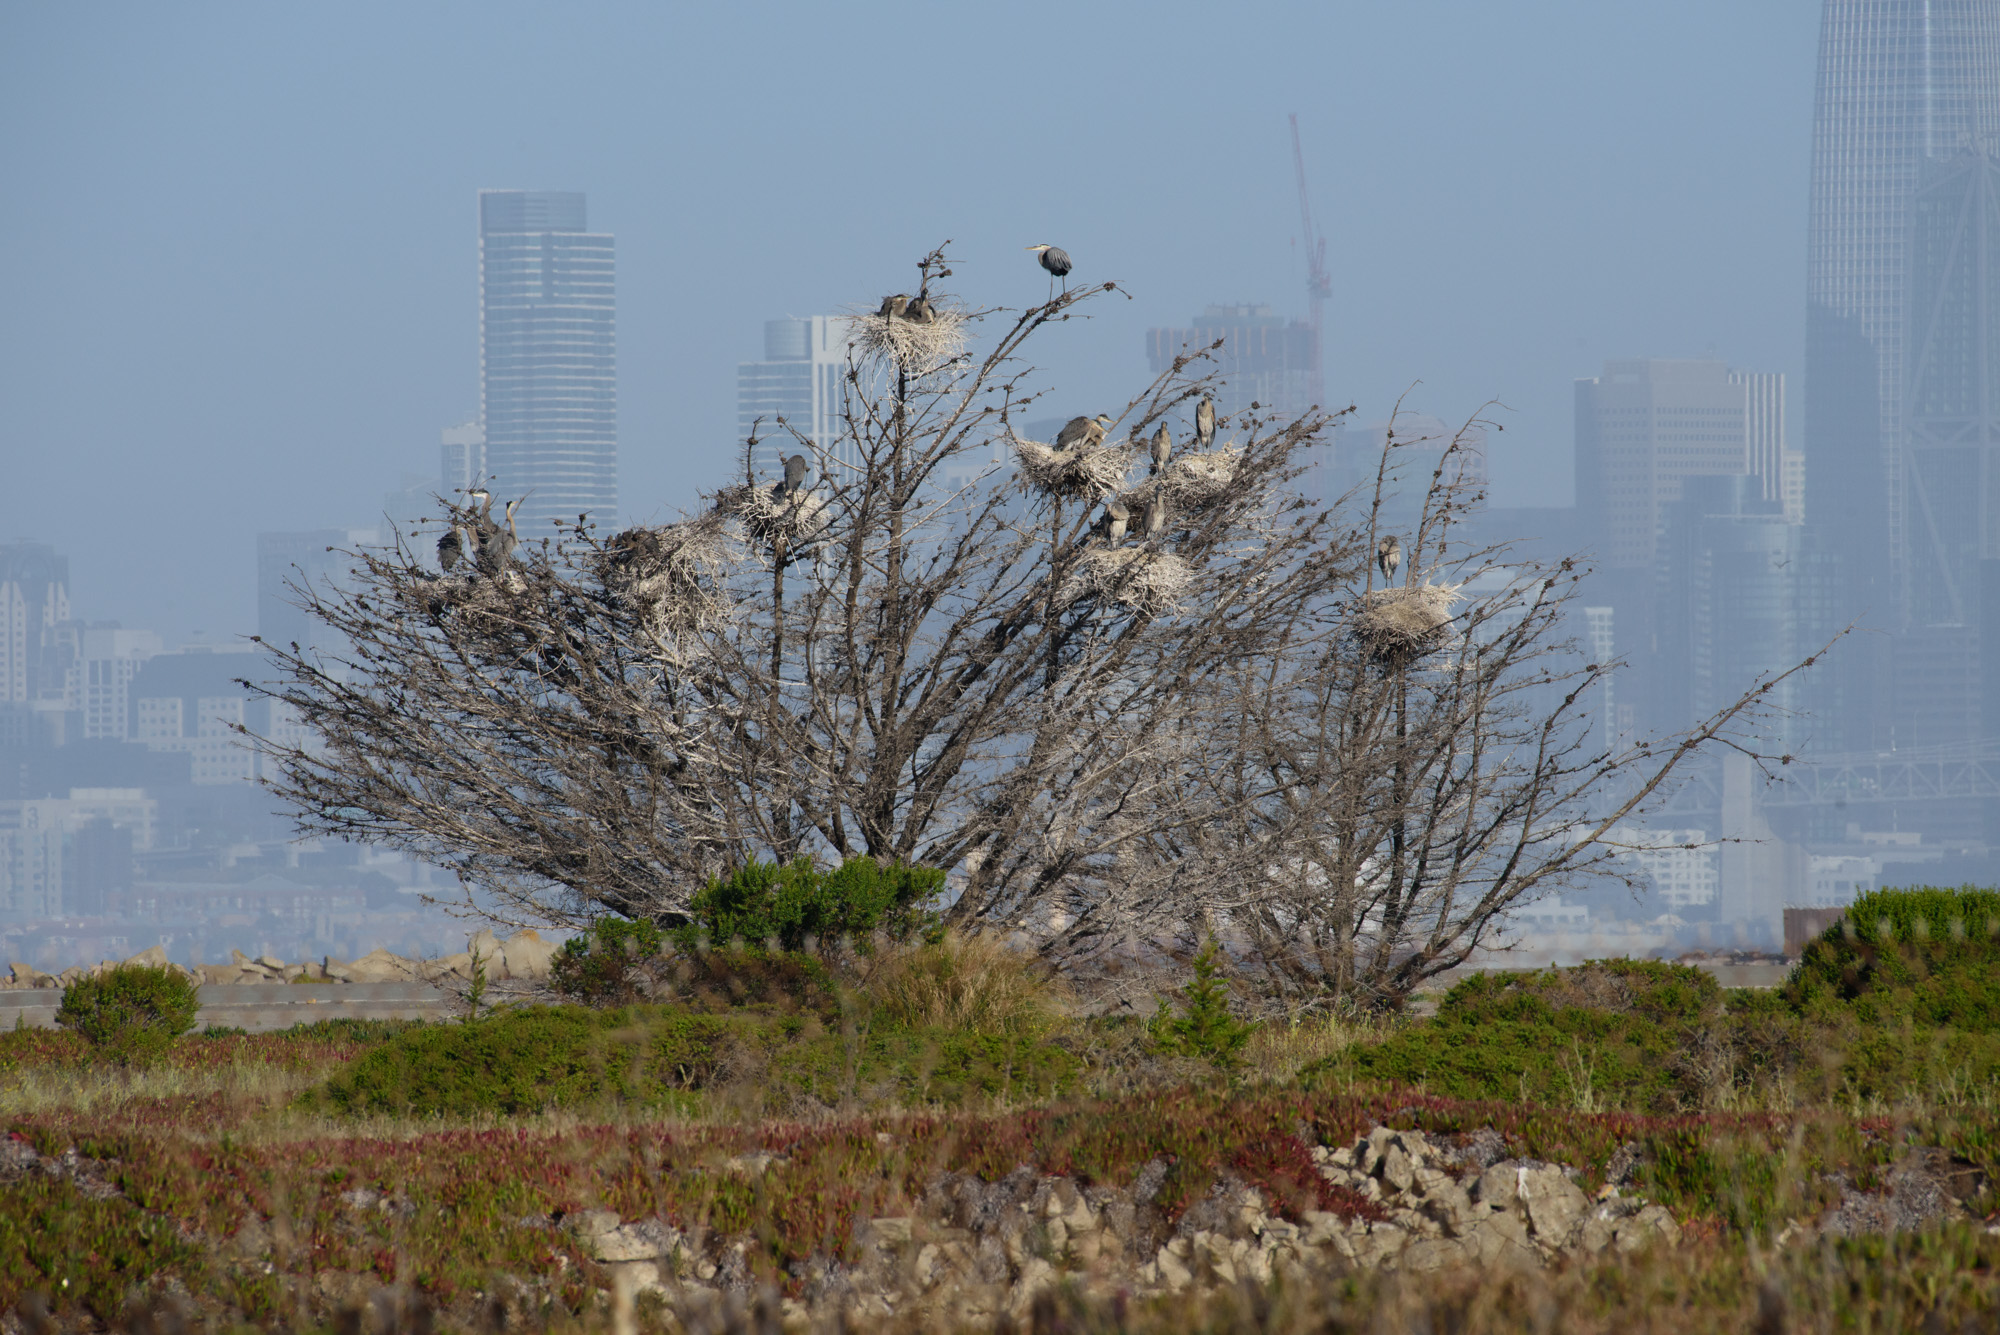 Great blue heron nesting tree with San Fransisco in the background